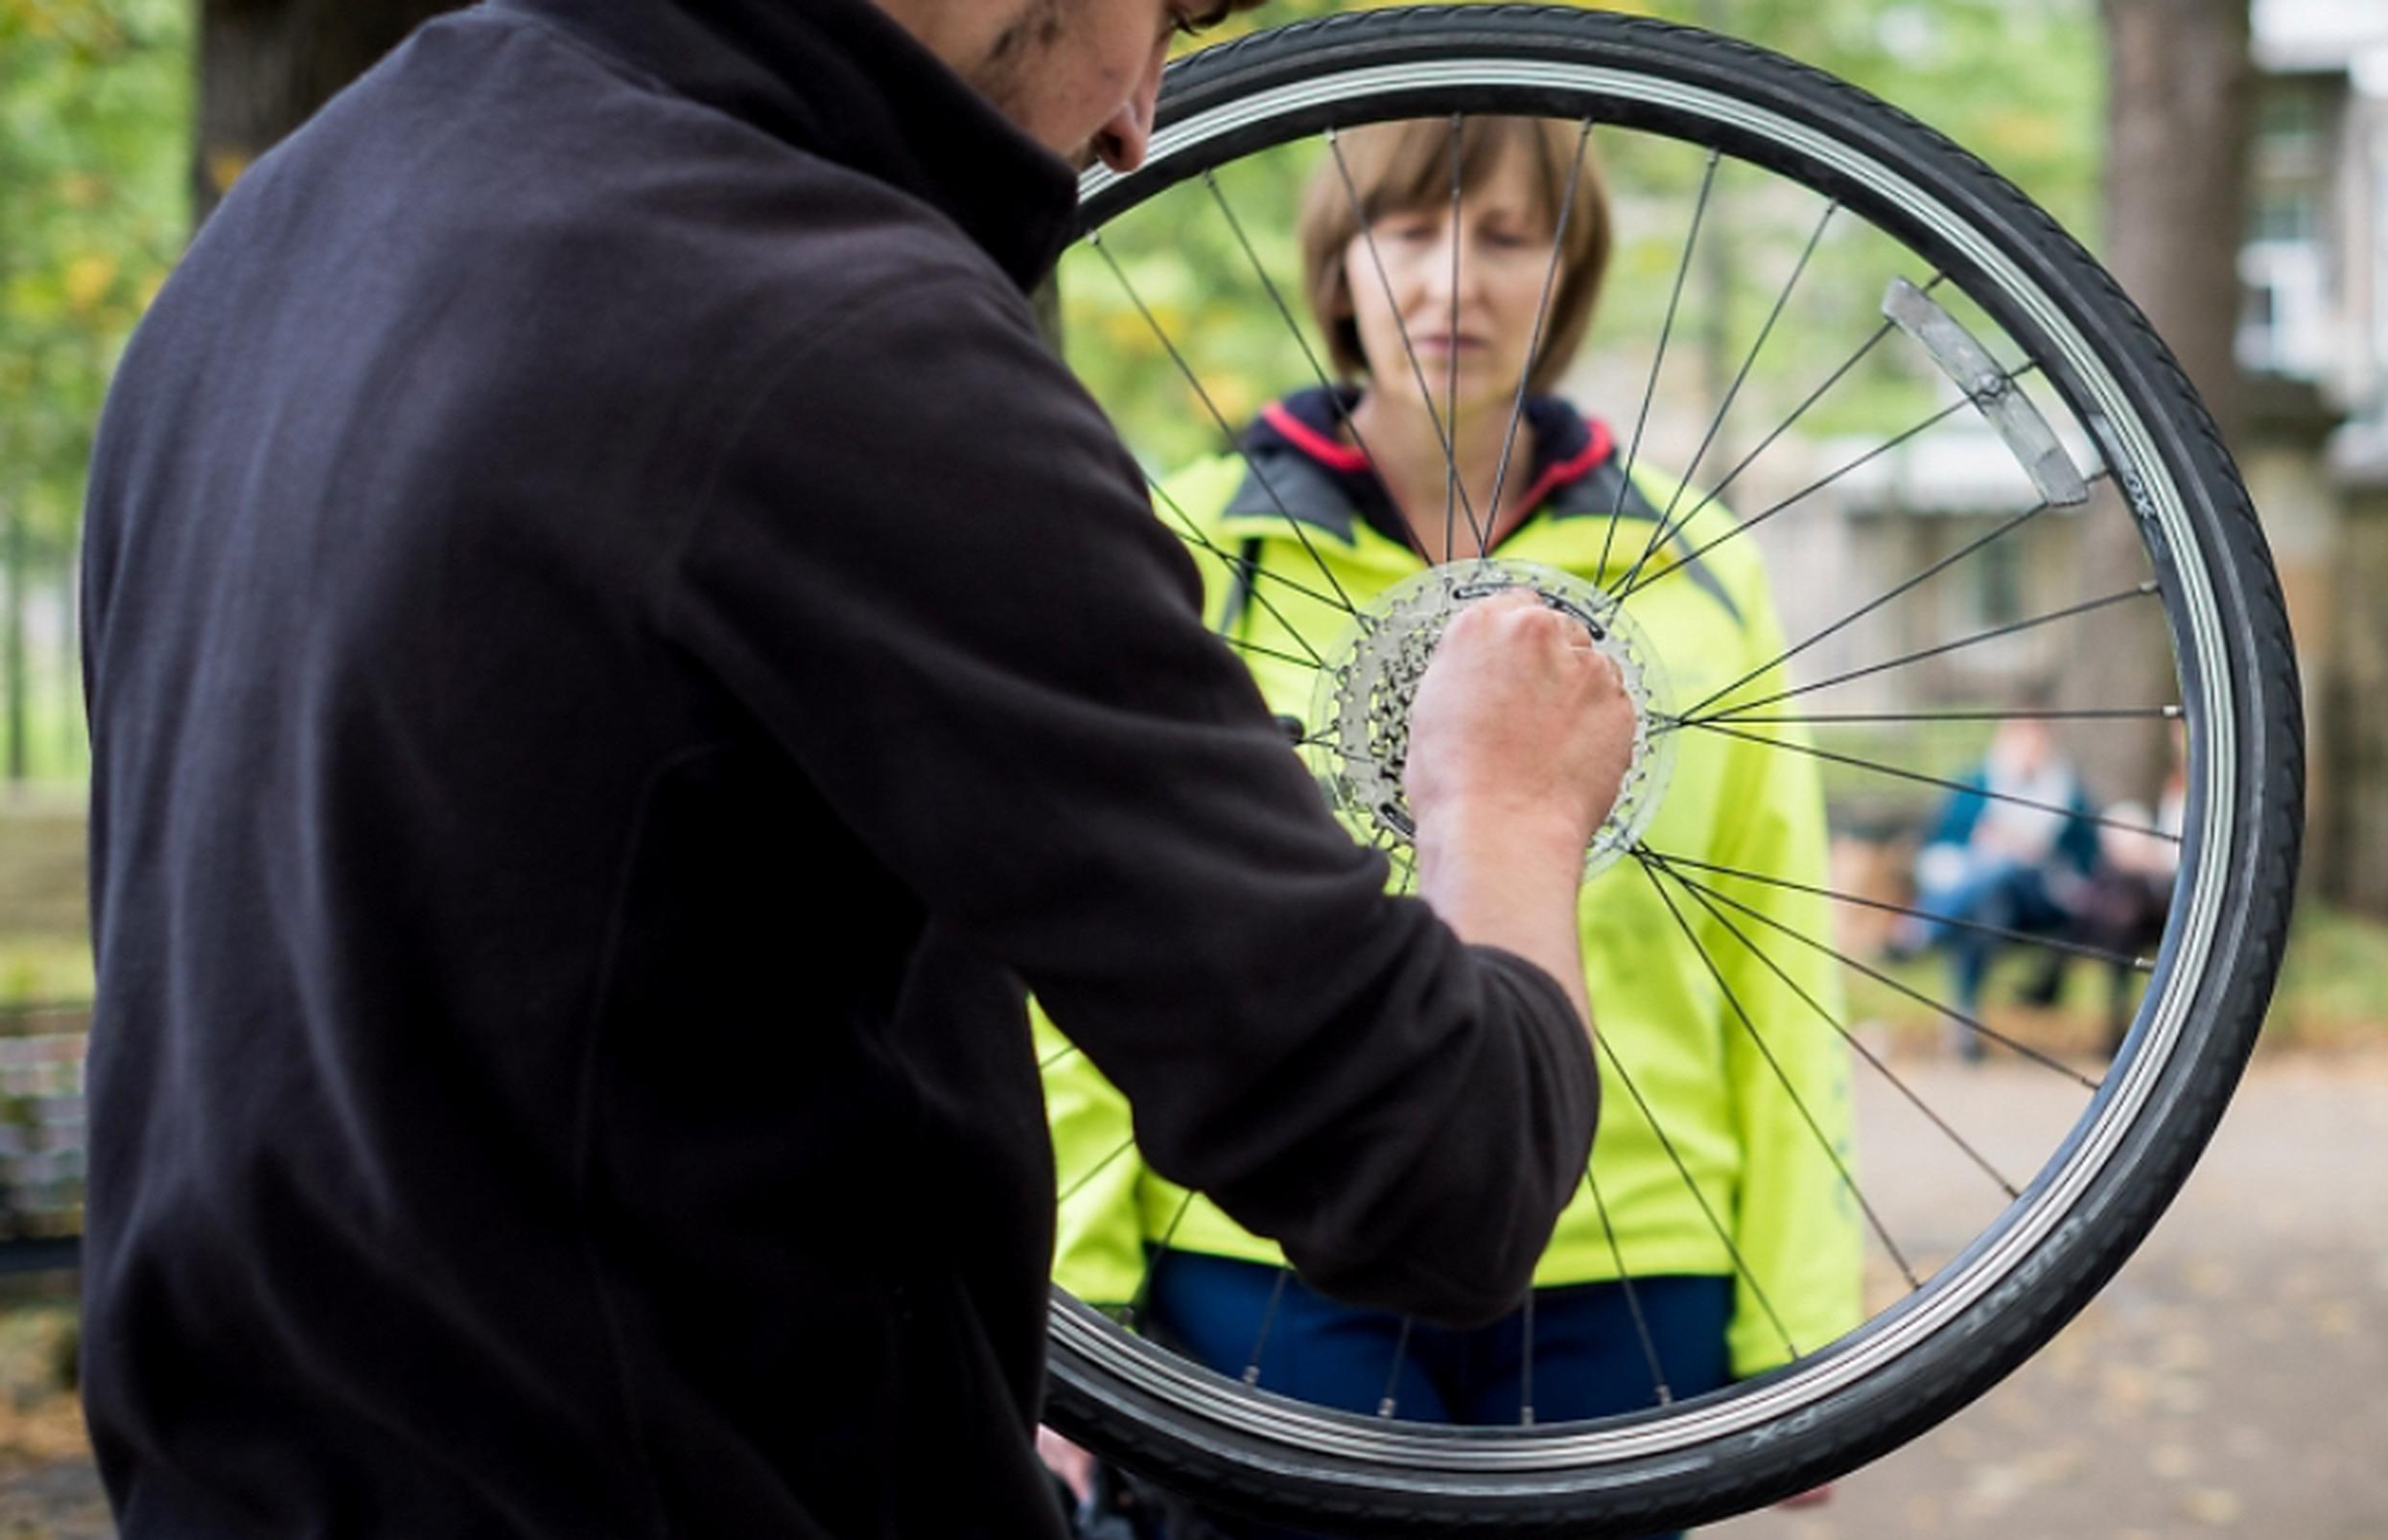 Bike rescue campaign aims to get people in the saddle